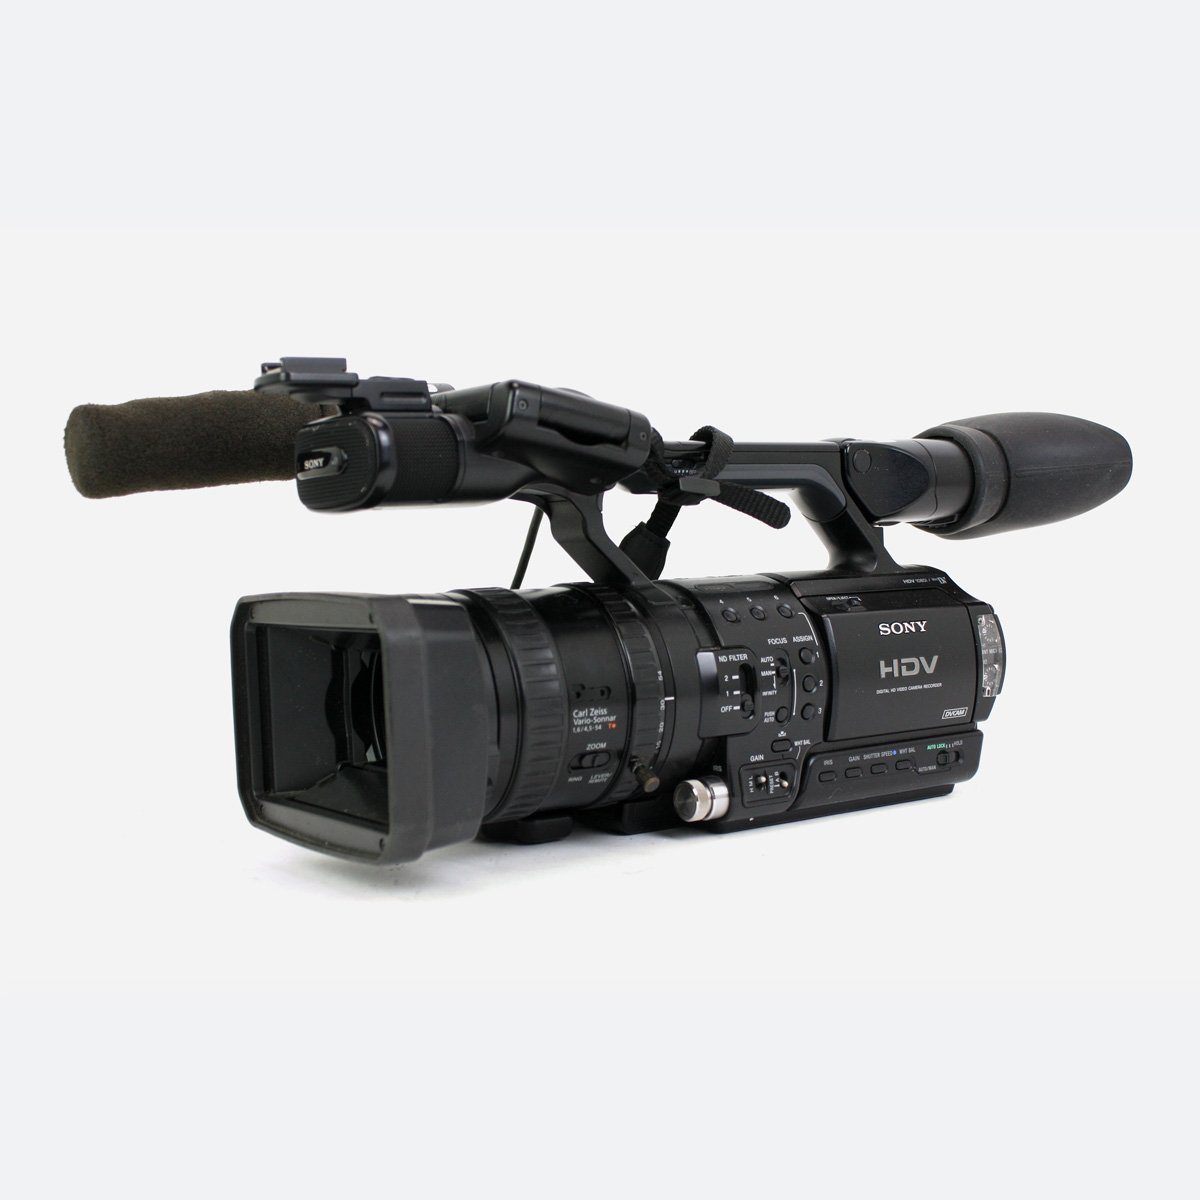 "Used Sony HVR-Z1E HDV 1/3"" 3CCD Handheld Camcorder"